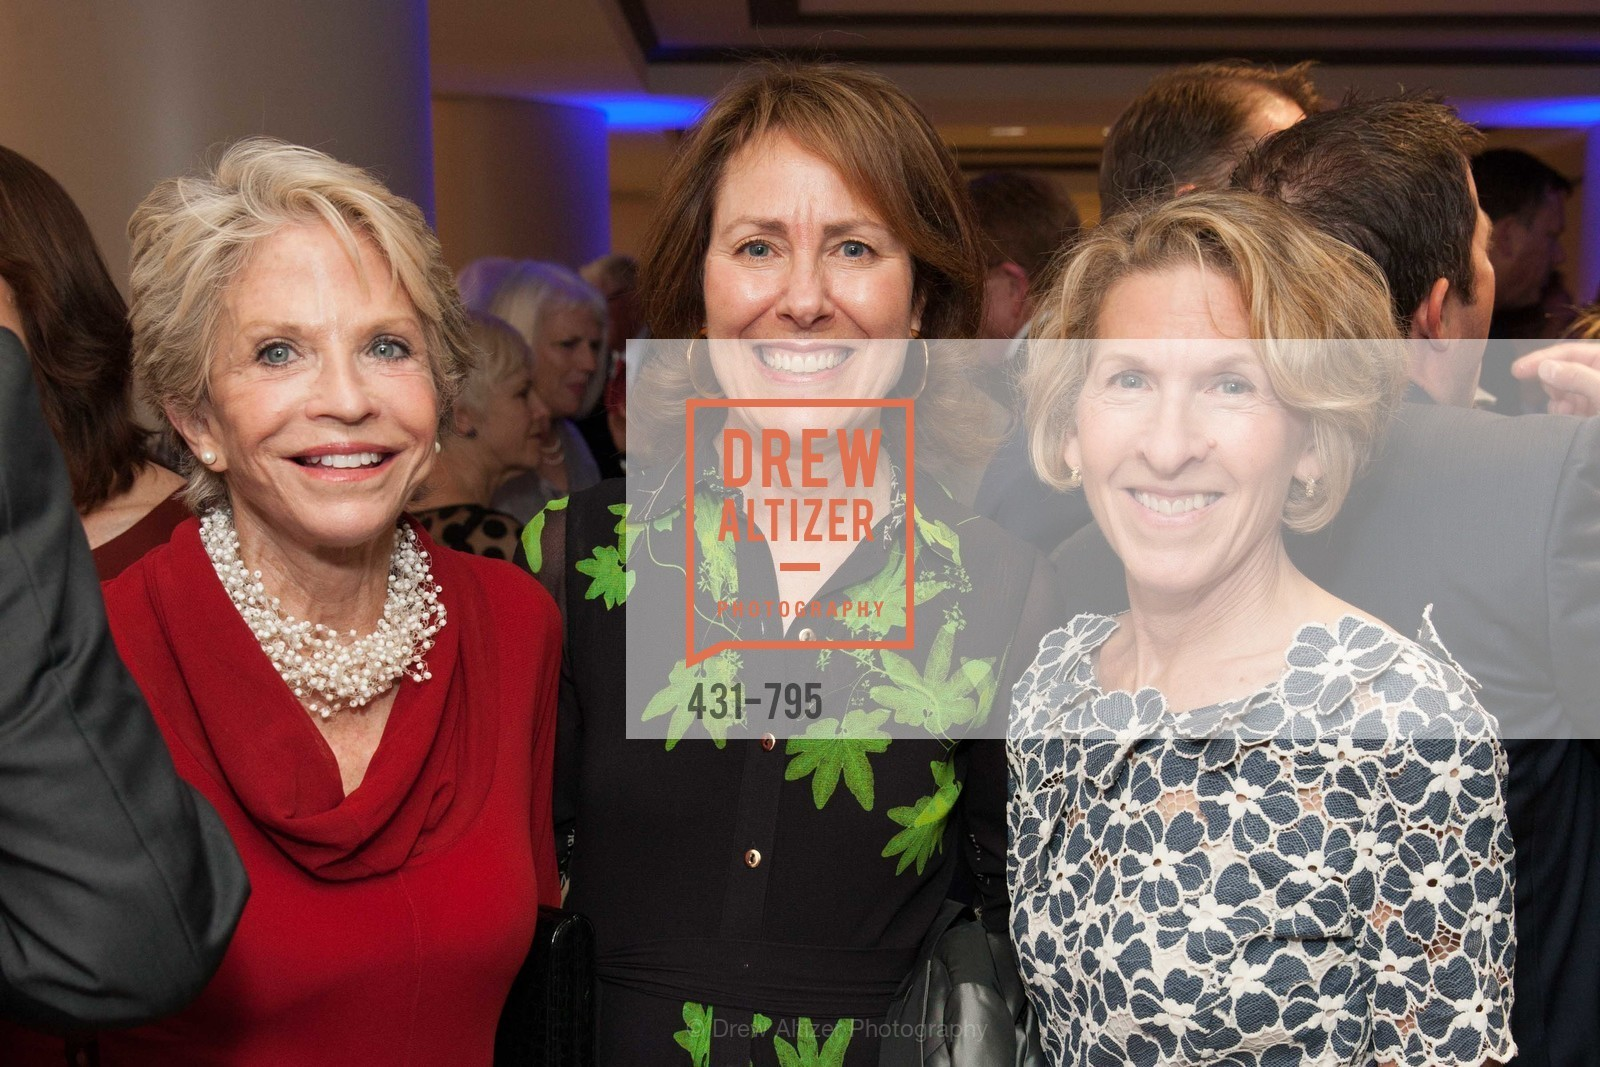 JoAnn Bertges, Nancy Field, COMPASS FAMILY SERVICES Annual Spring Benefit:  Every Family Needs A Home, US, April 22nd, 2015,Drew Altizer, Drew Altizer Photography, full-service agency, private events, San Francisco photographer, photographer california